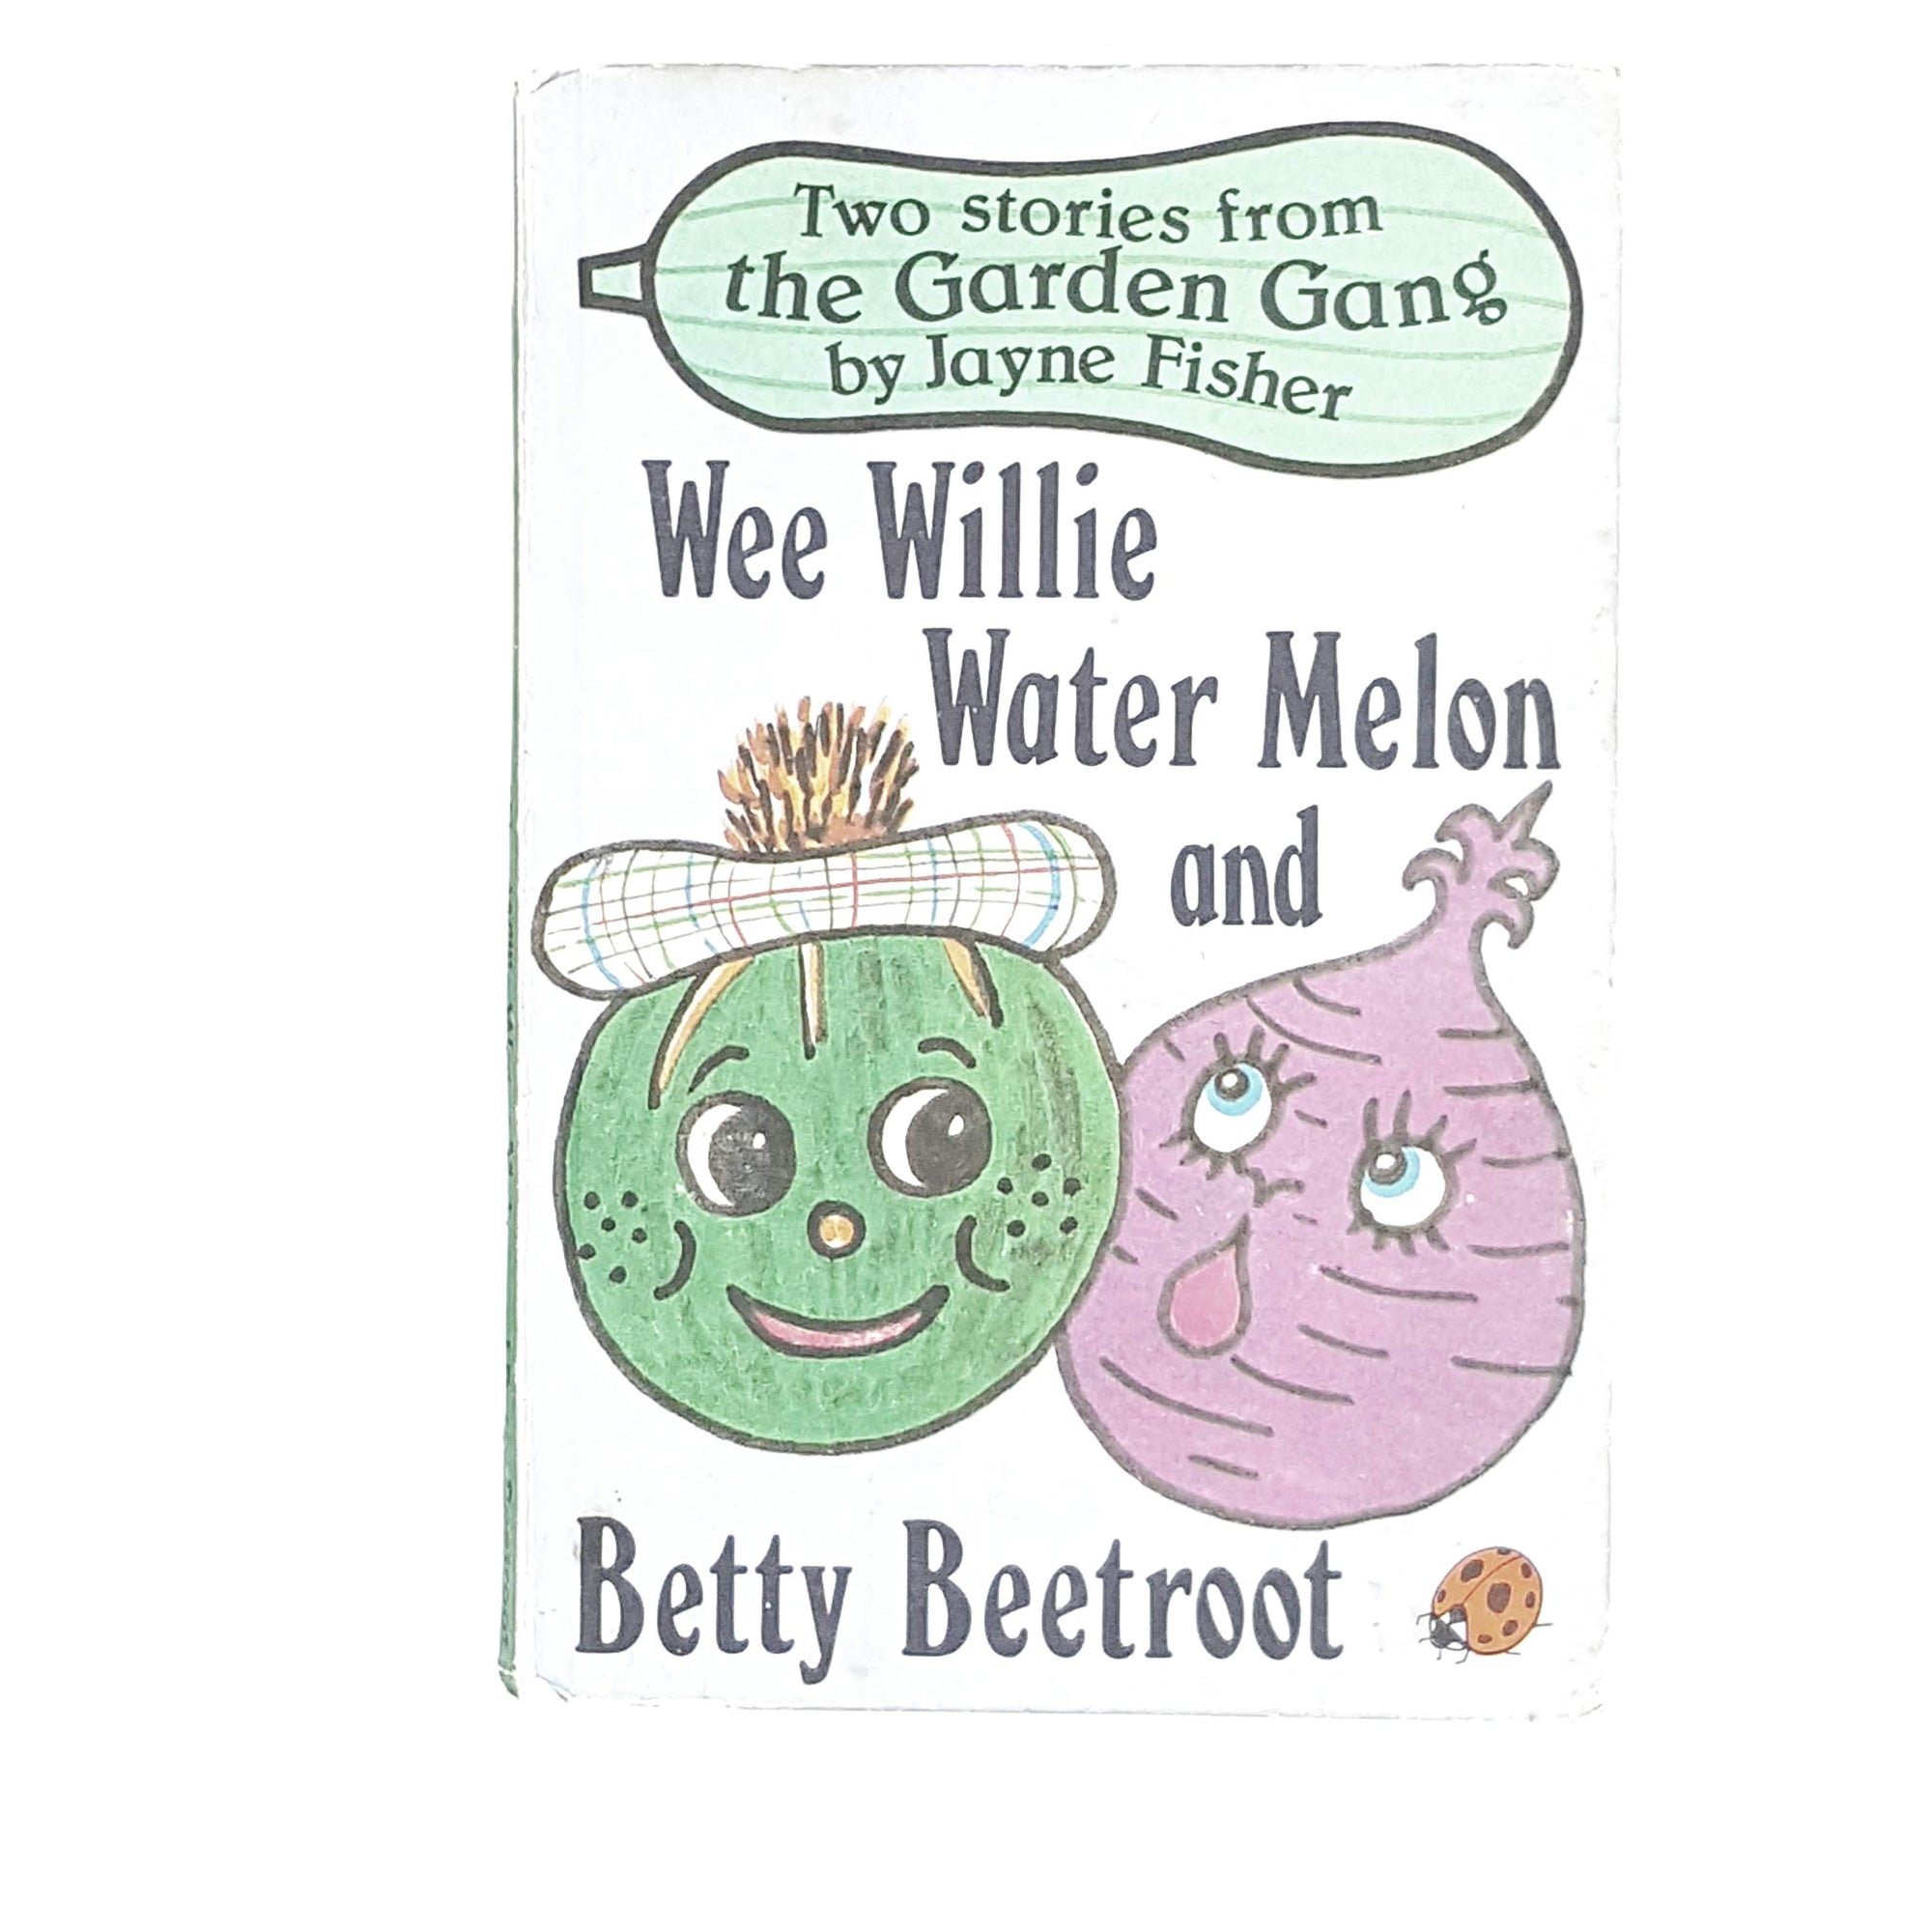 Ladybird Garden Gang: Wee Willie Water Melon and Betty Beetroot by Jayne Fisher 1979